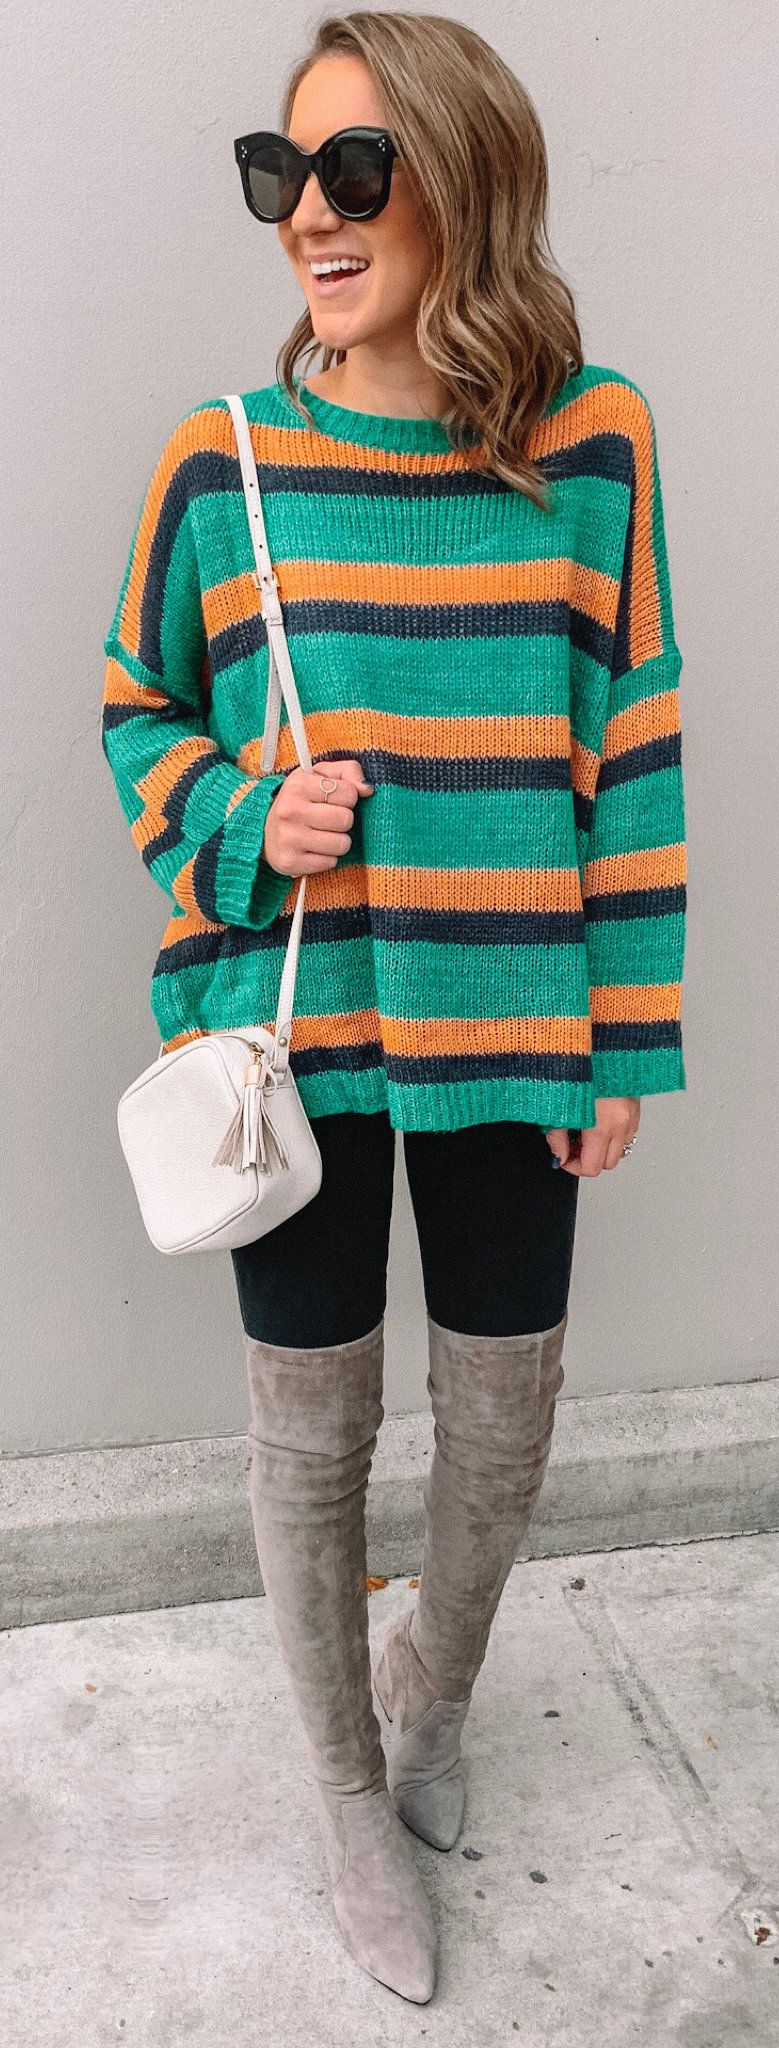 green, black, and orange stripe sweater